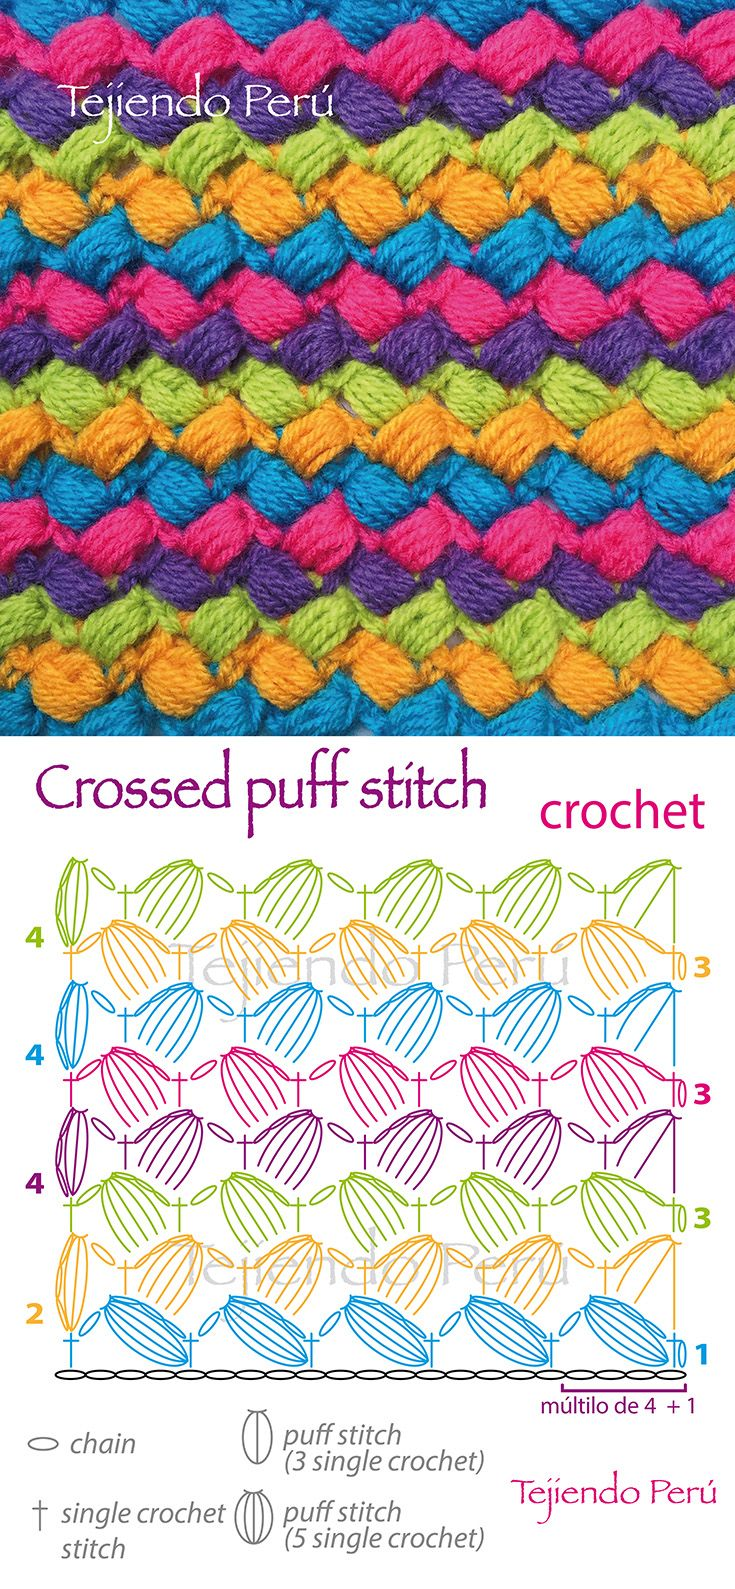 Crochet crossed puff stitch pattern or diagram crochet crossed puff stitch pattern or diagram ccuart Gallery